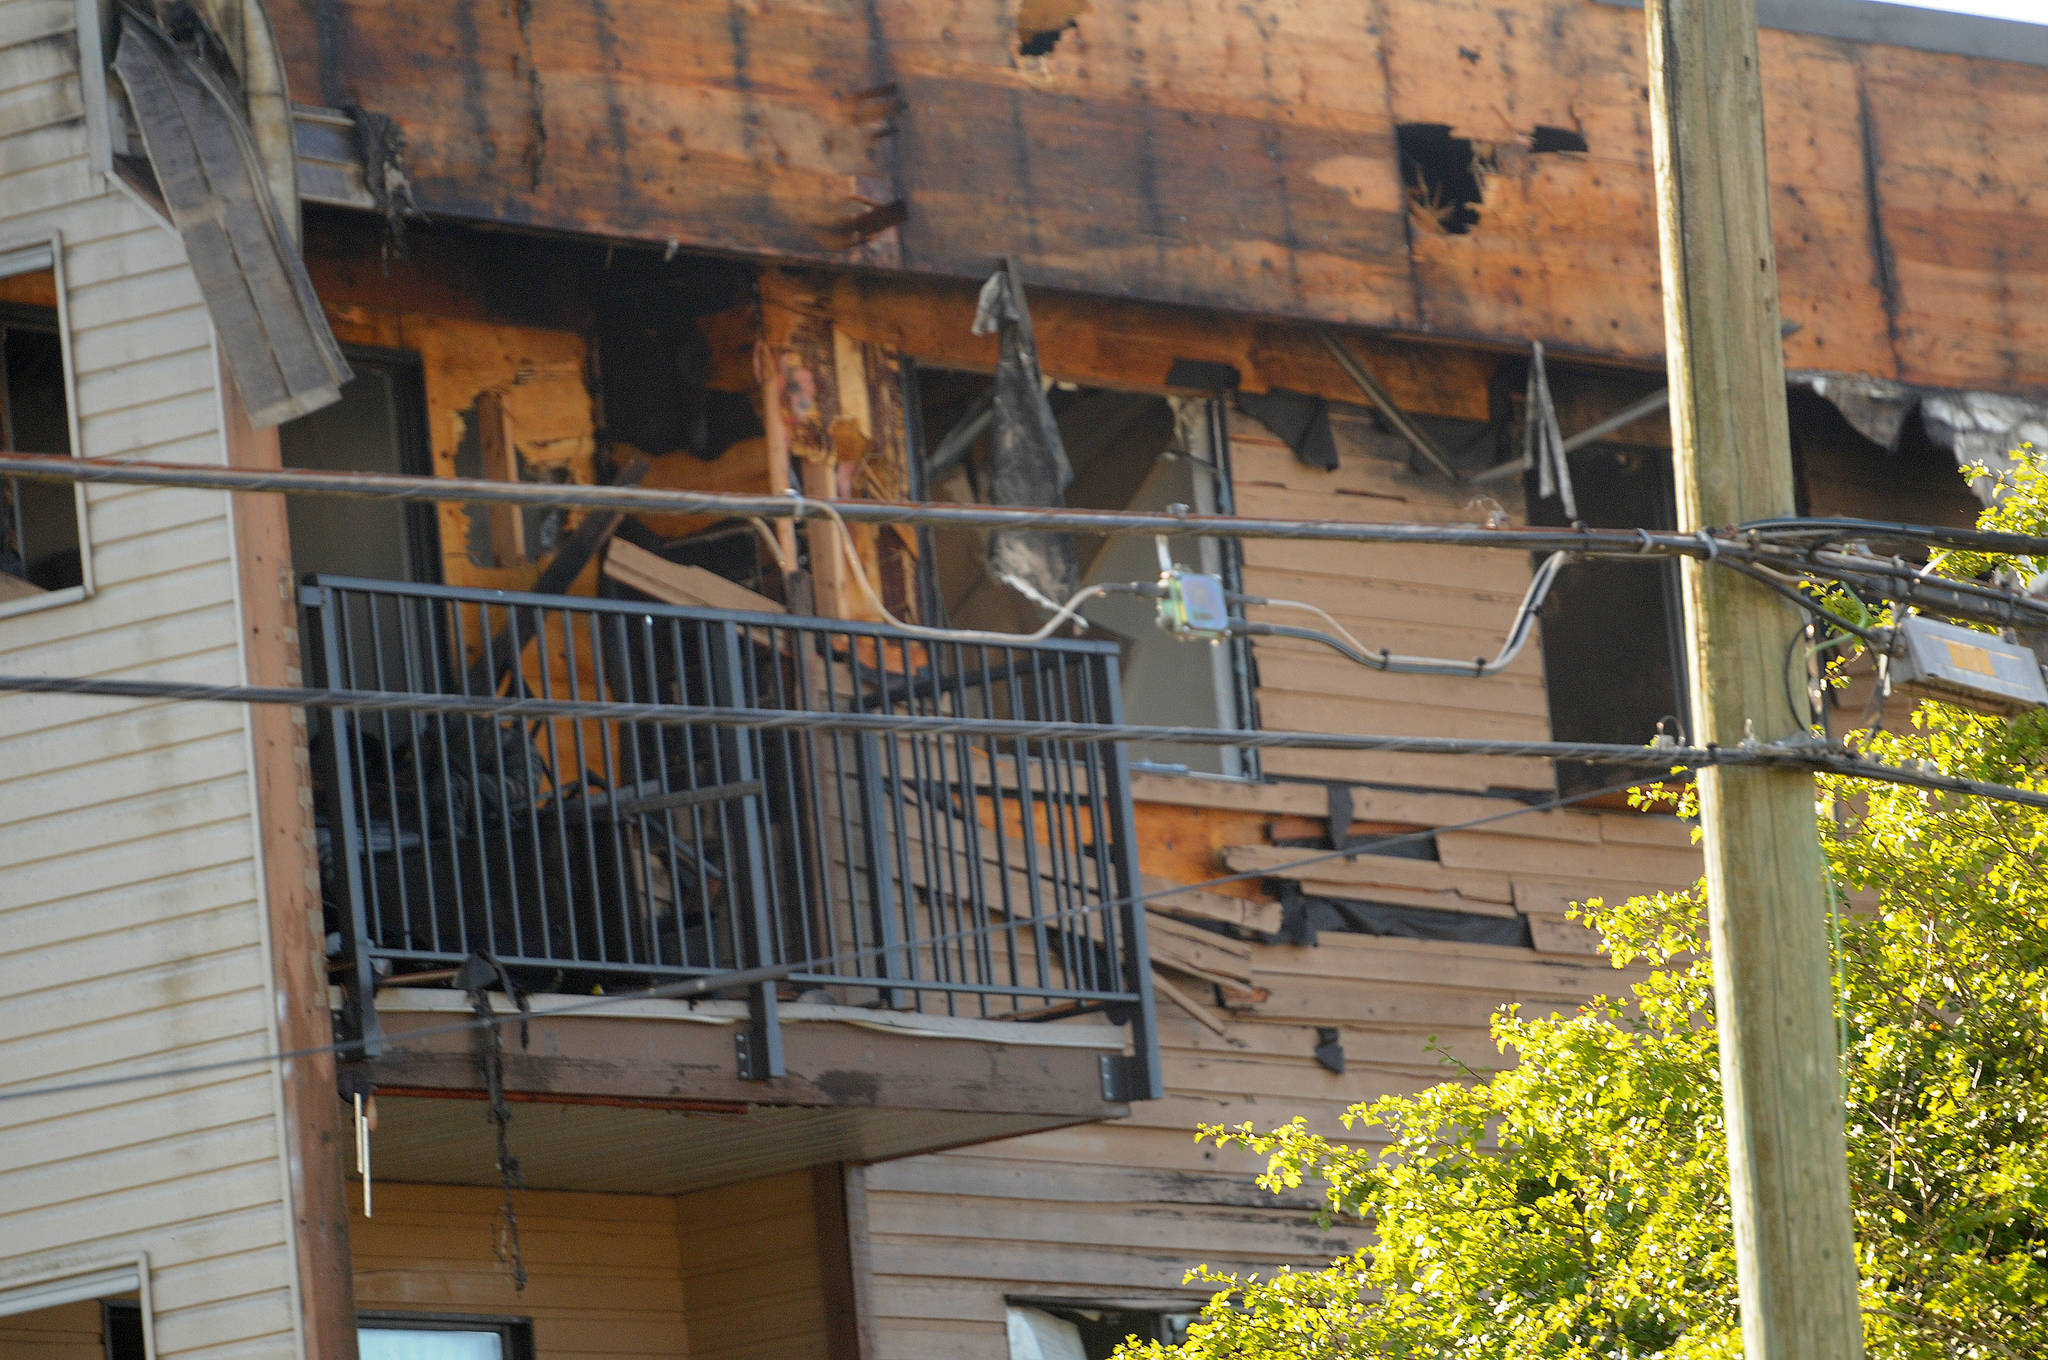 A corner unit on the fourth floor of a Hazel Street apartment building shows particularly bad damage after an overnight fire on July 29, 2021. (Eric J. Welsh/Chilliwack Progress)